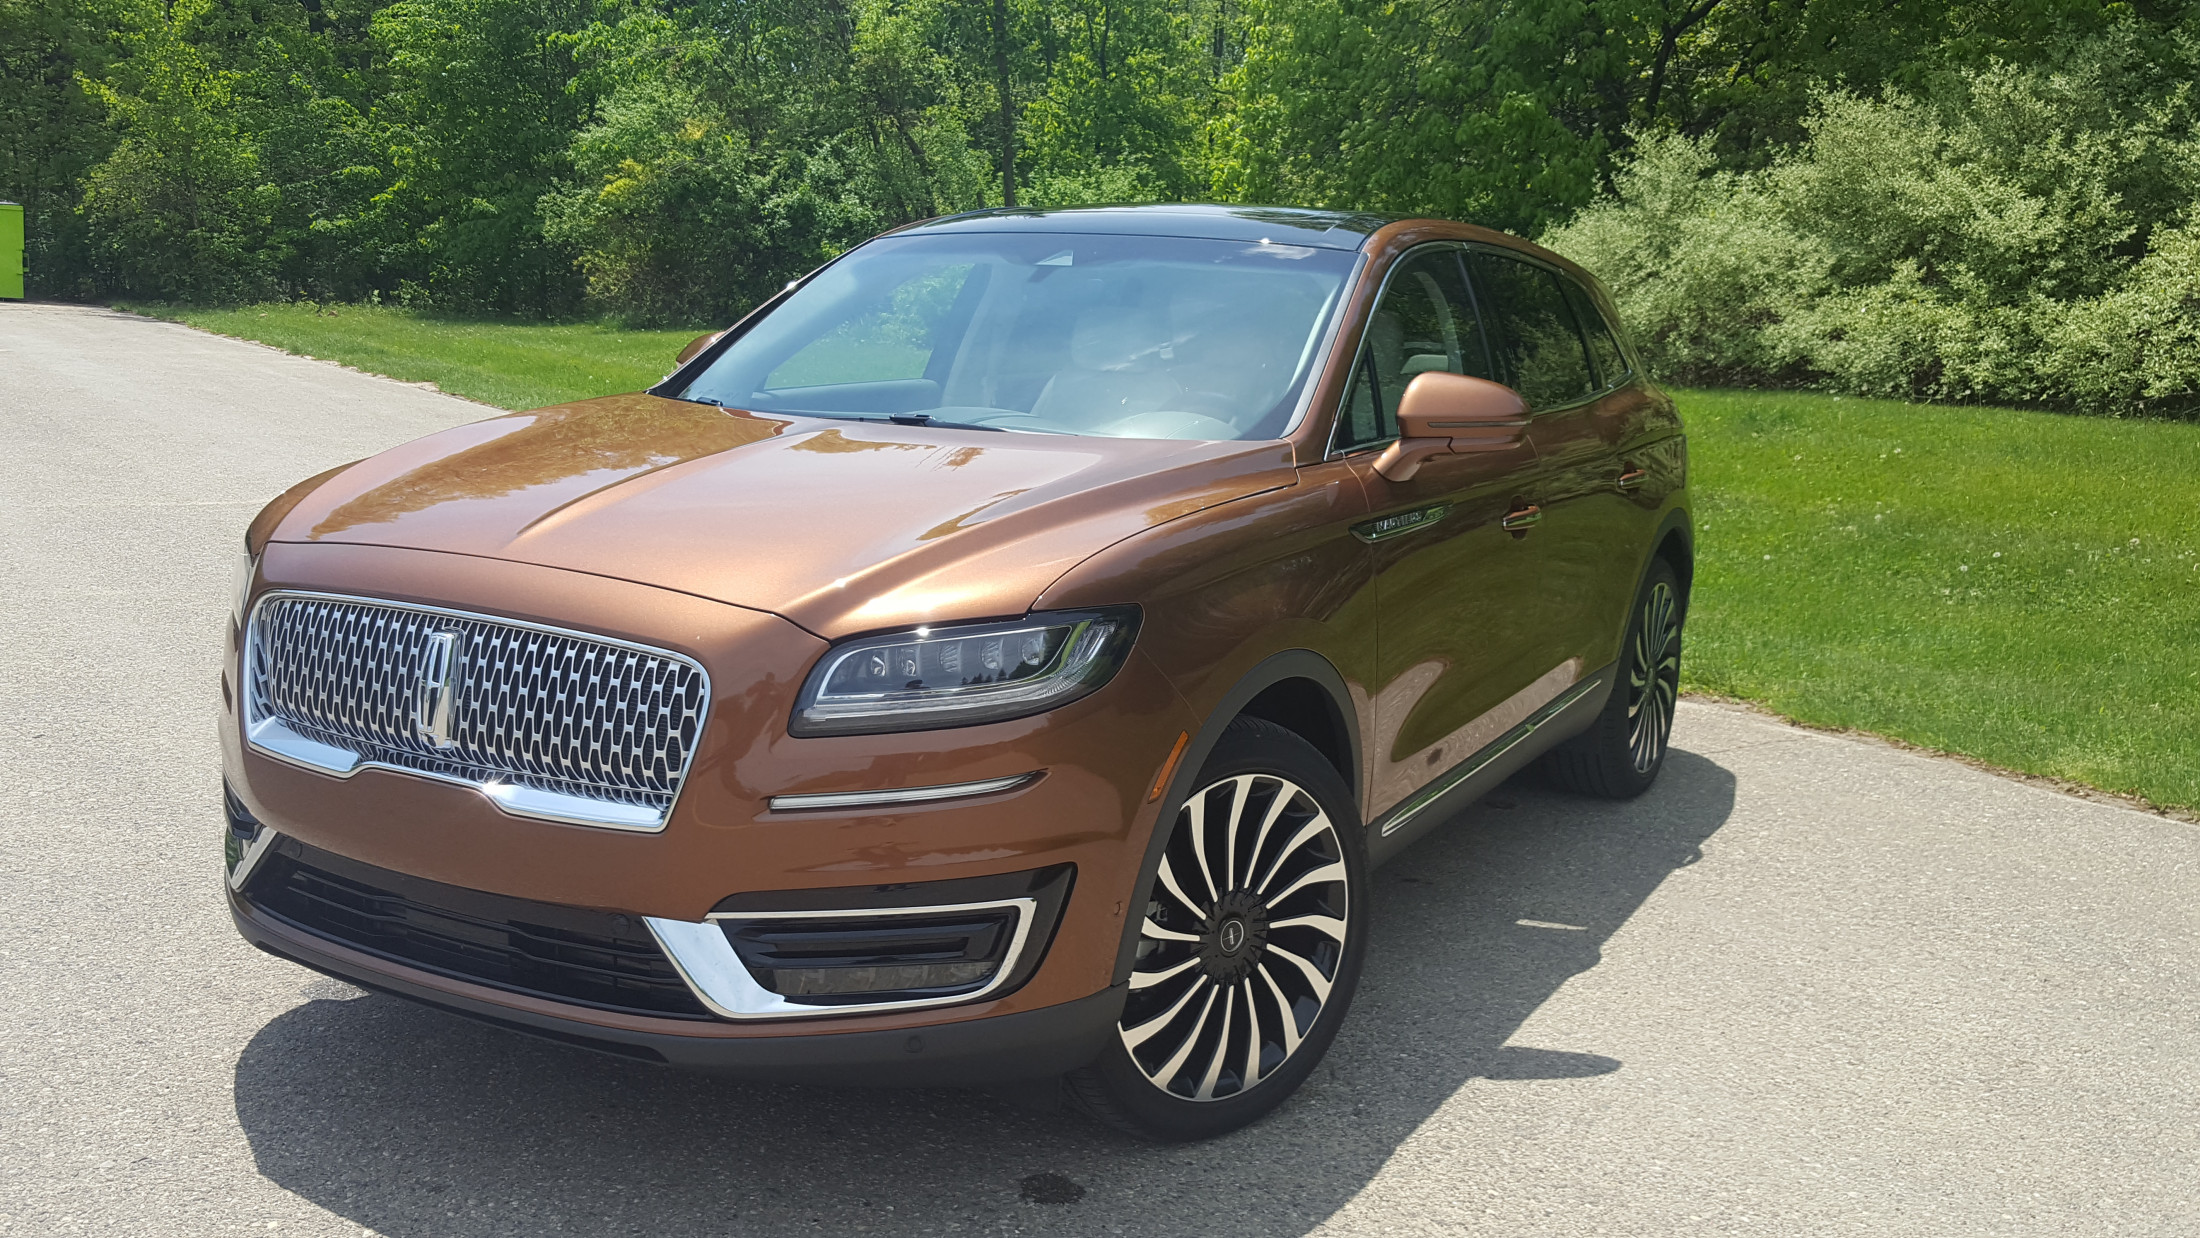 74 The Best Ford Nautilus 2019 Rumors Redesign